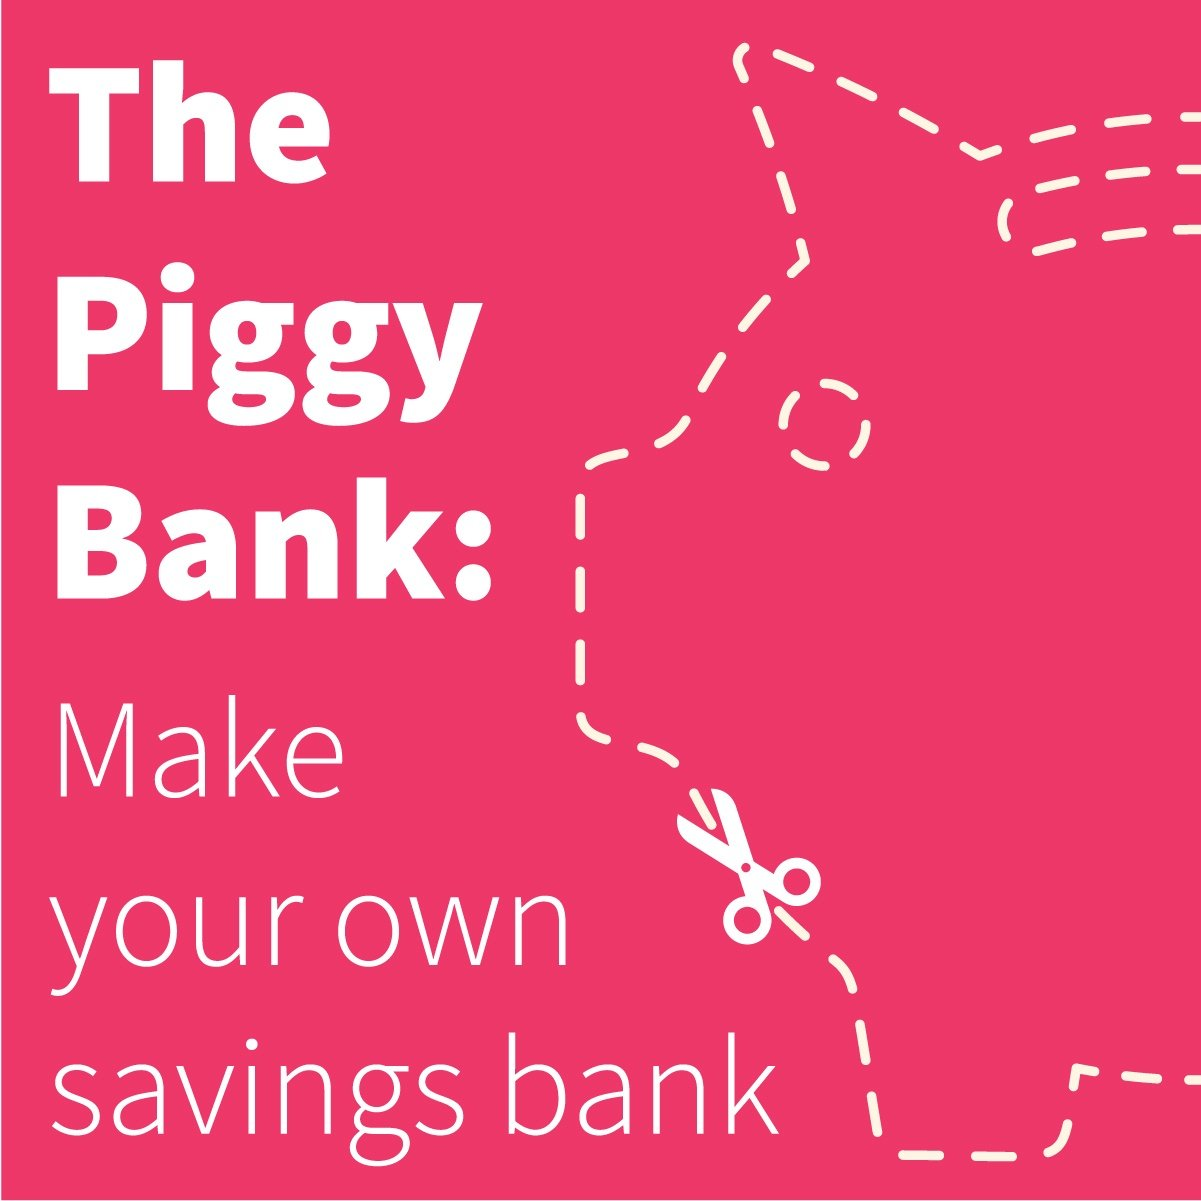 Piggy bank make your own savings bank blog-01.jpg